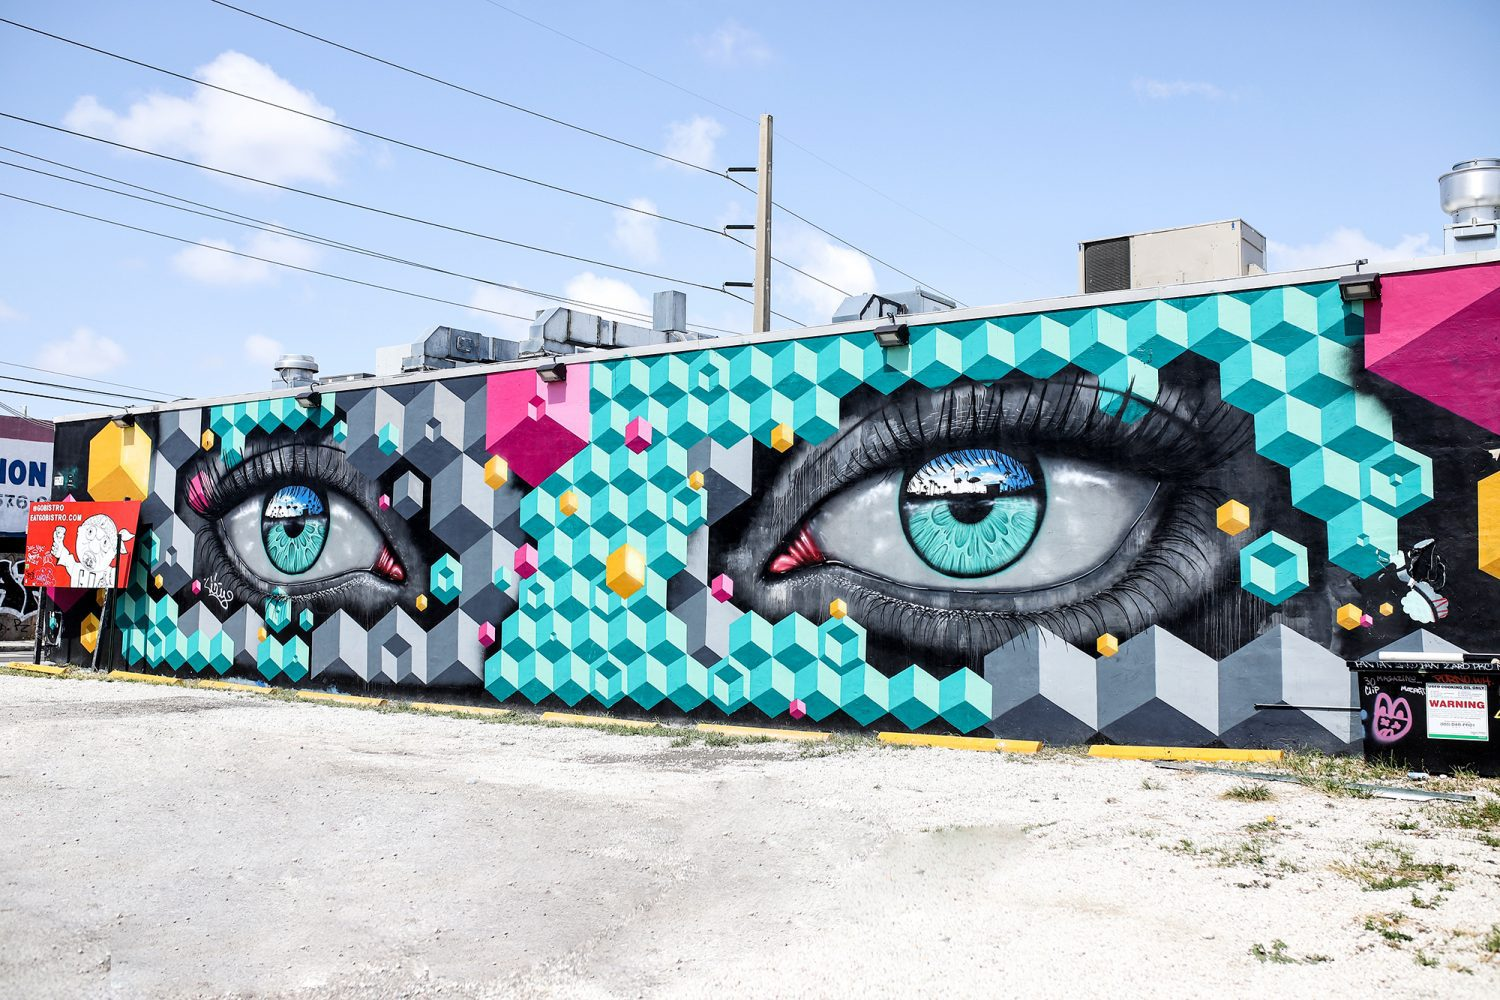 wynwood walls, wynwood miami, art district, miami art district, graffiti, miami graffiti walls, art in miami, walls for instagram, instagrammable, places to take pictures, florida, family friendly, florida attractions, beach, florida beach, road trip, family road trip, family vacation, travel, trip, mommy blog, mom blogger, family blog, family influencer, travel family blog, family travel blogs, mom blog, the super mom life